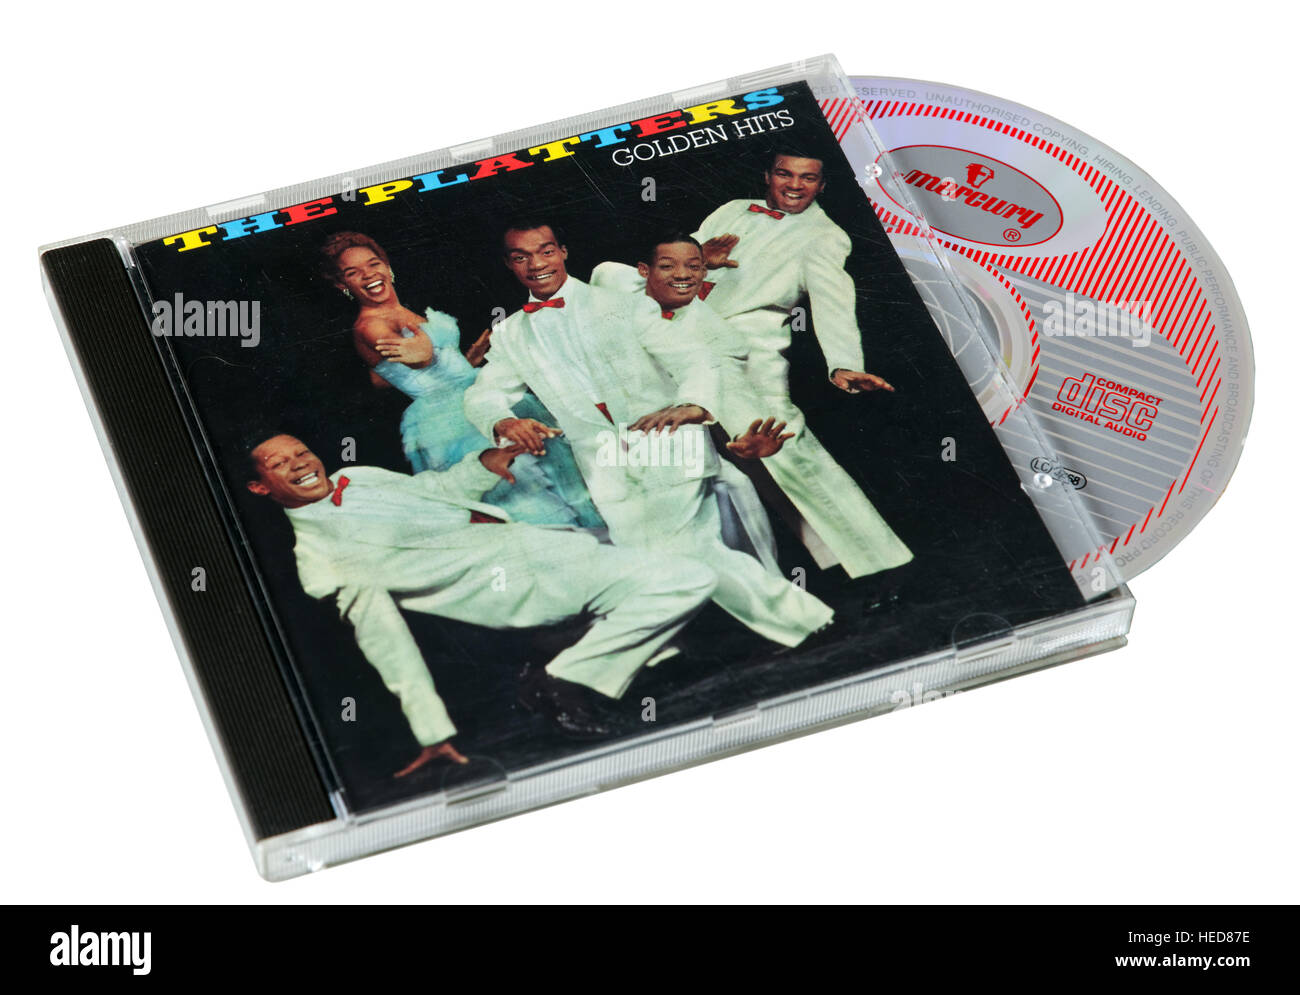 The Platters Greatest Hits CD - Stock Image